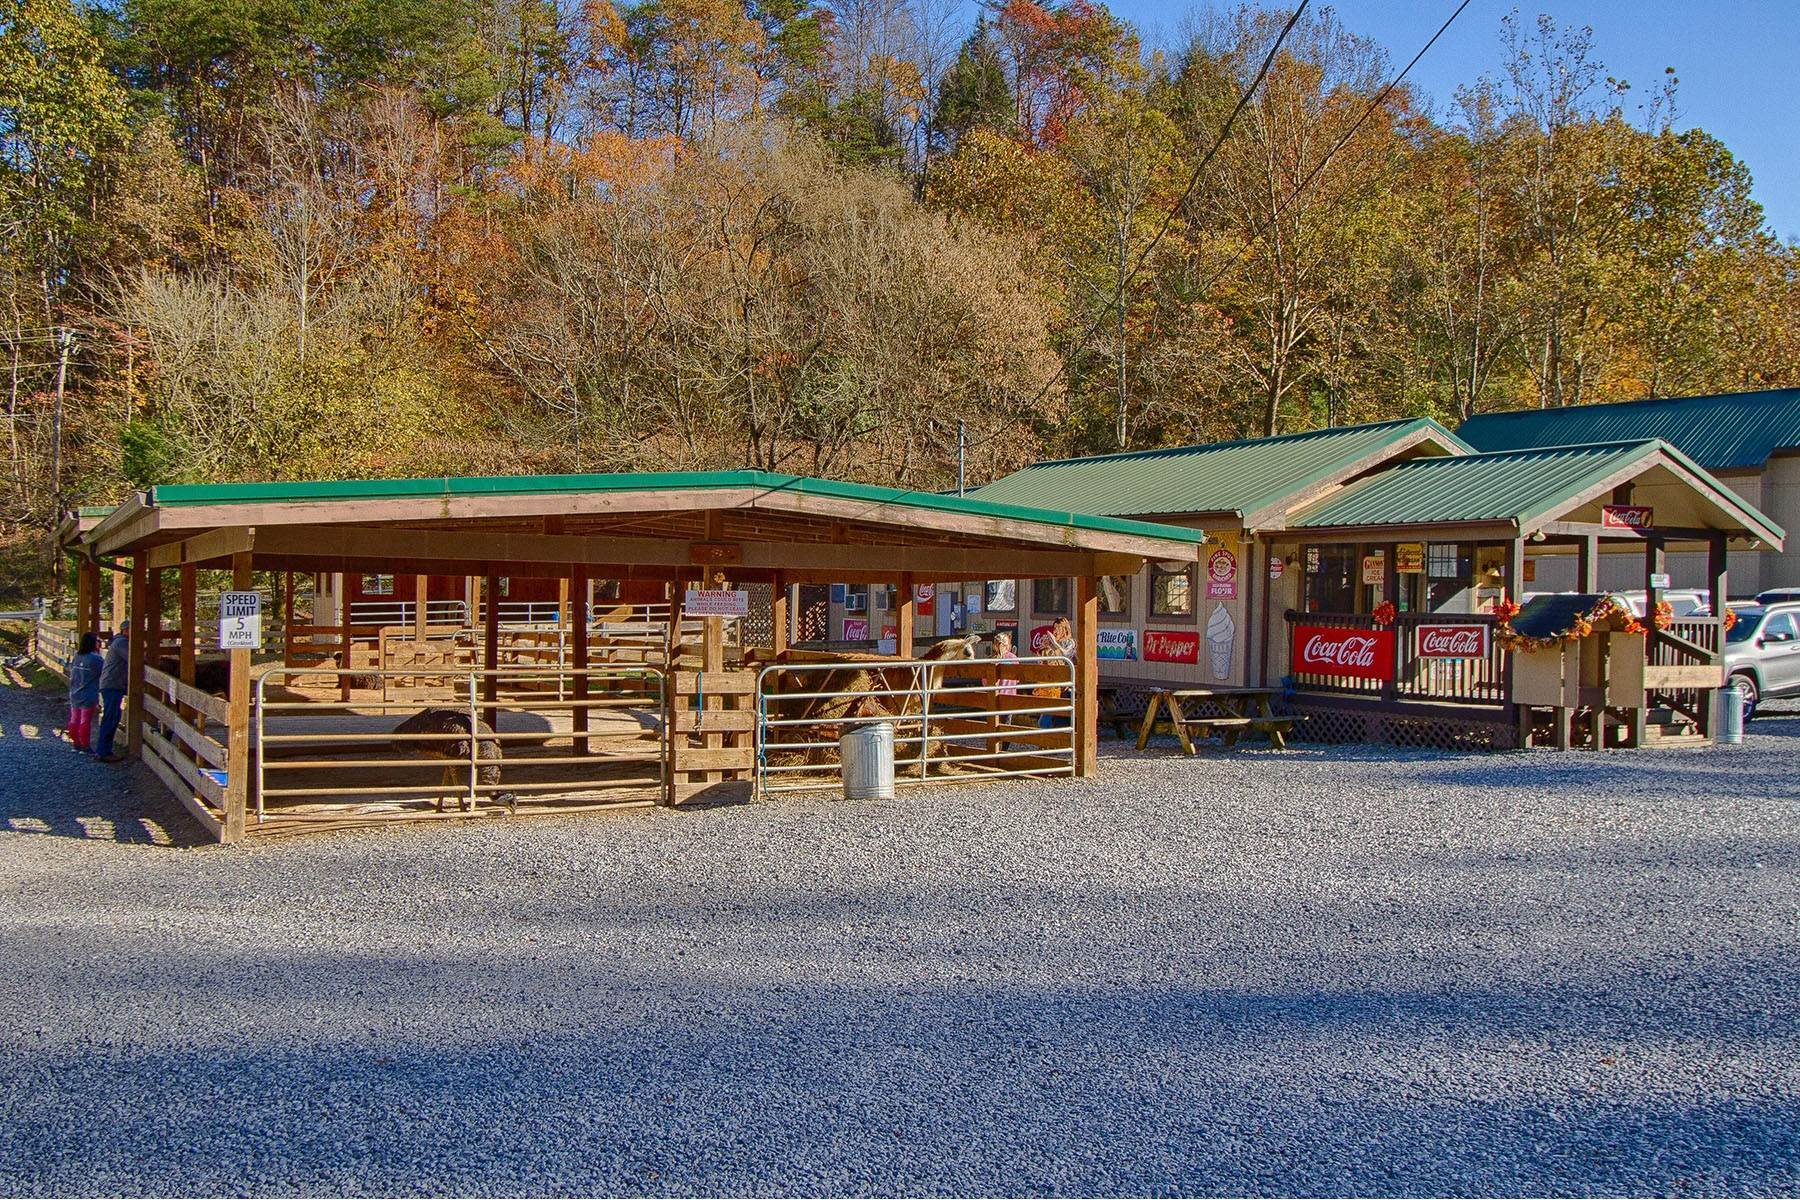 商用 为 销售 在 Big Rock Dude Ranch 909 Little Cove Road Pigeon Forge, 田纳西州 37863 美国